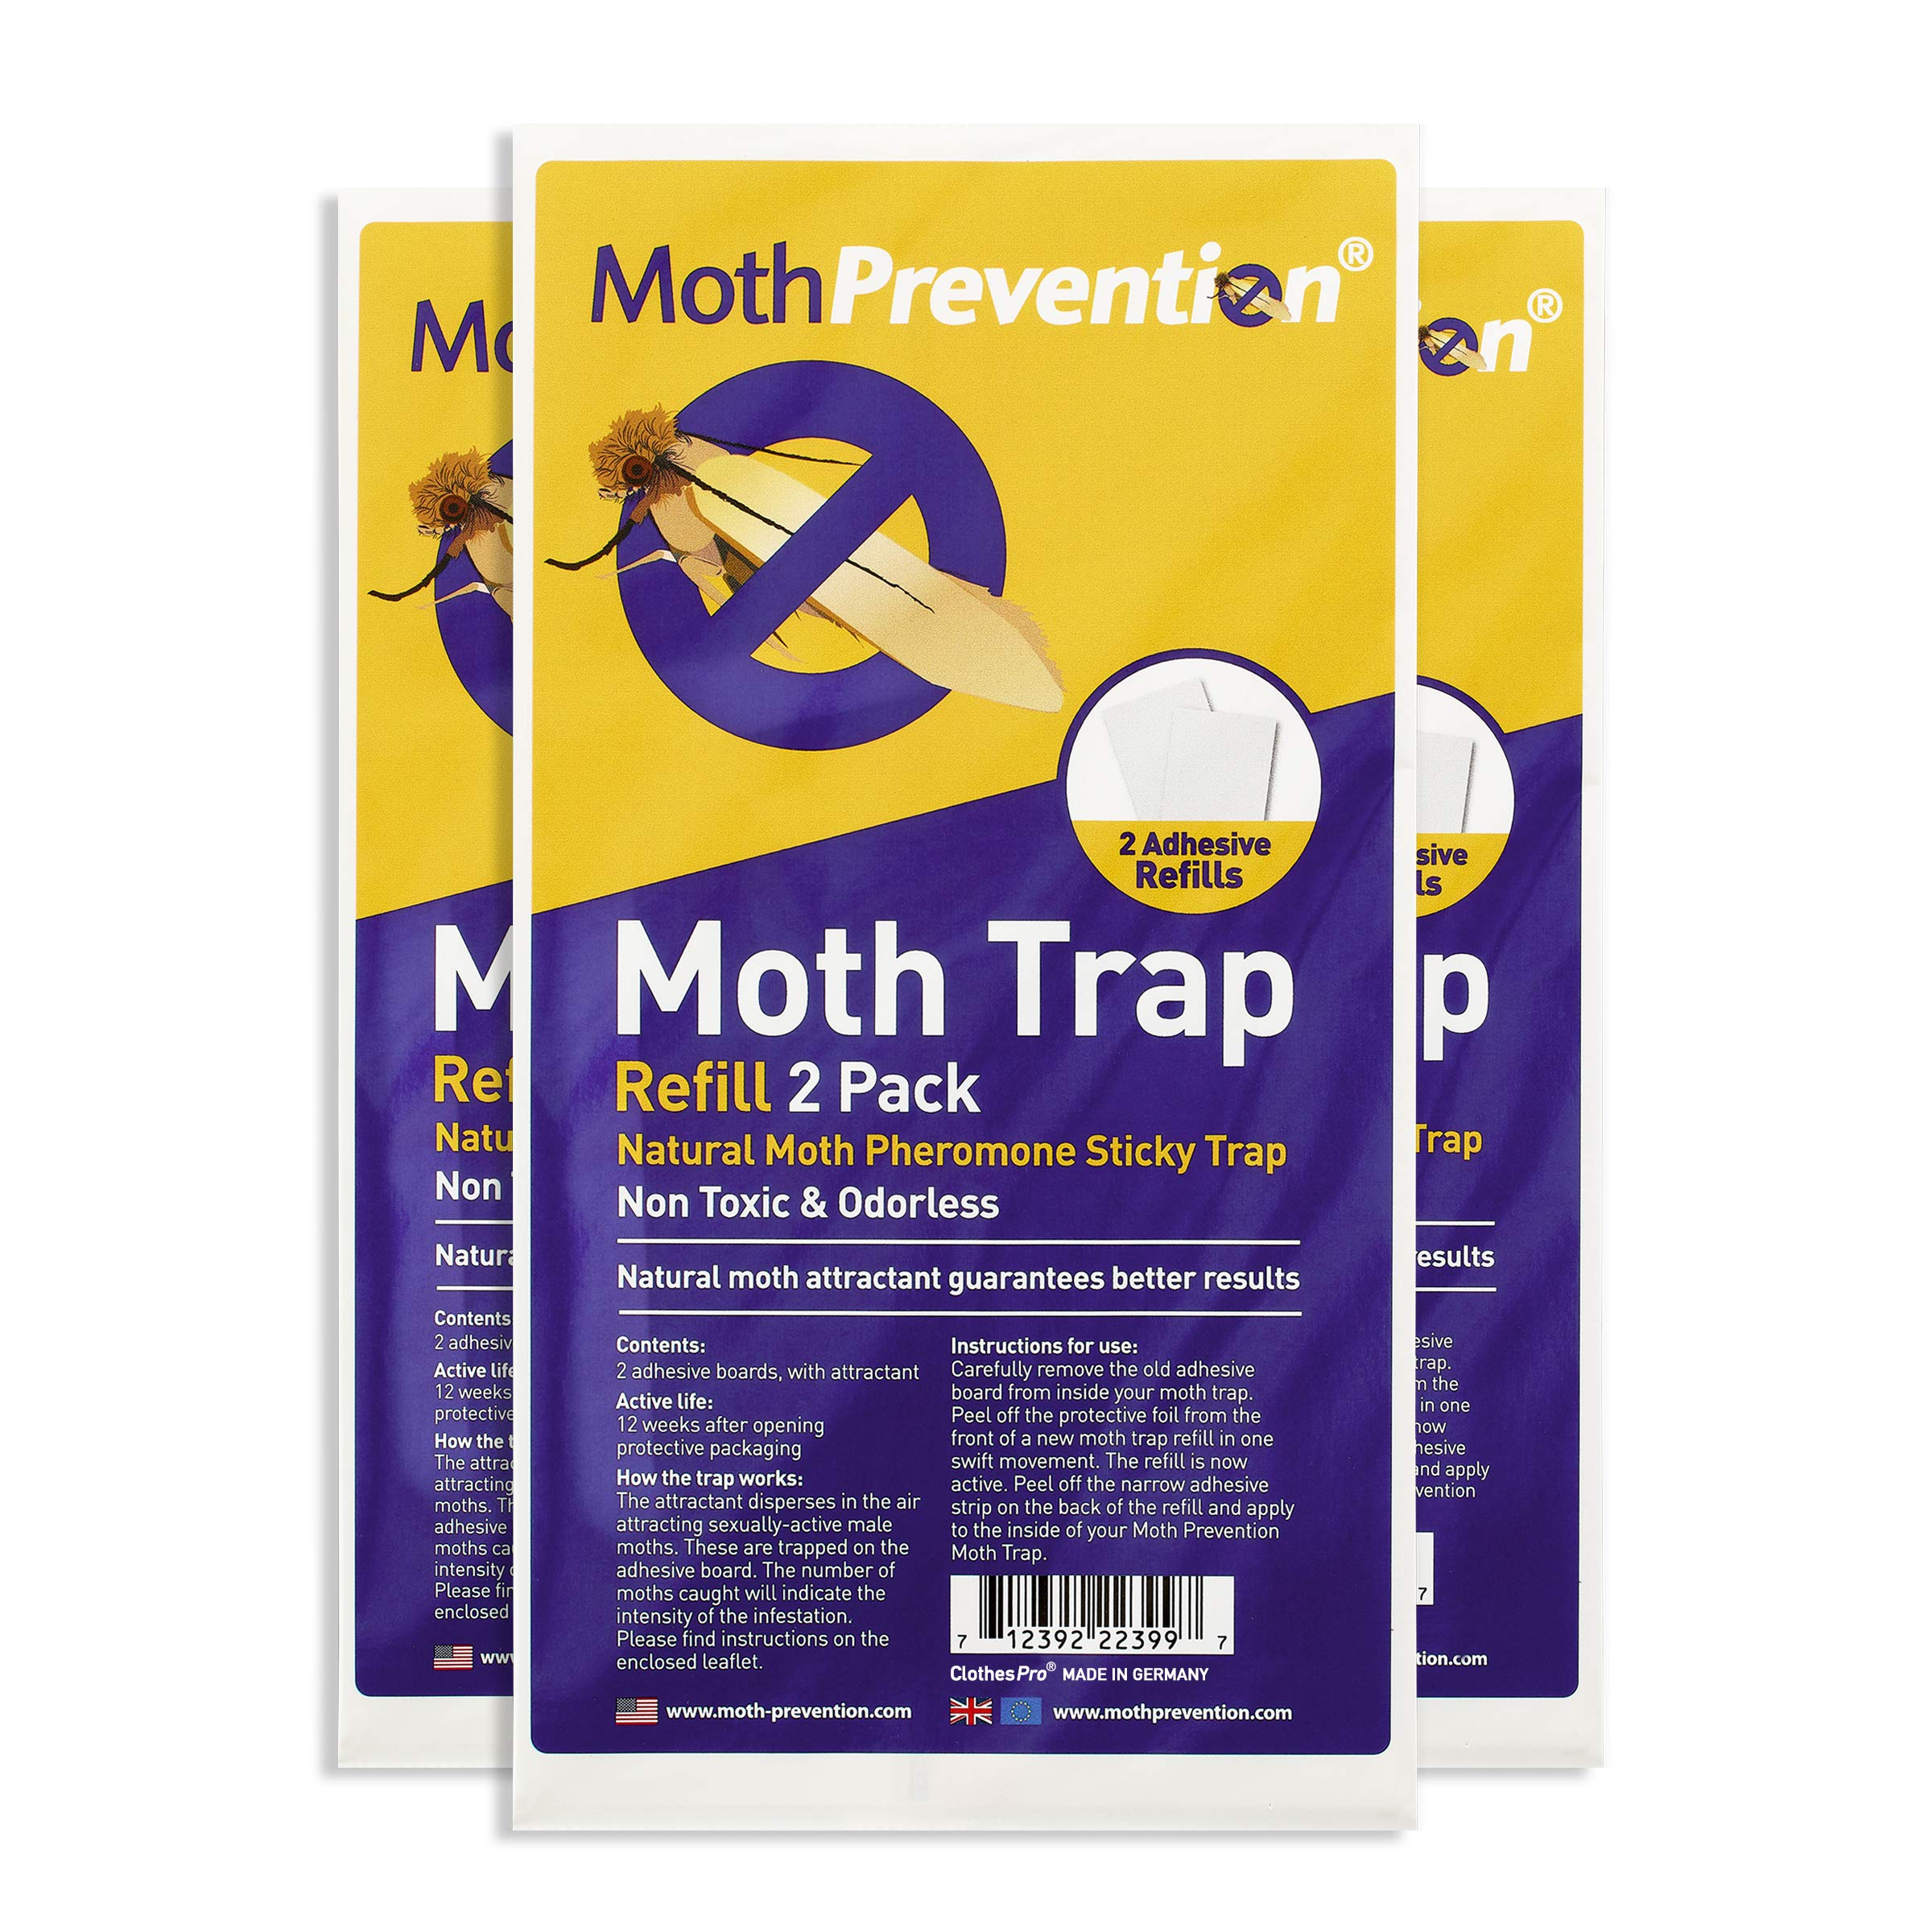 POWERFUL Replacement MothPrevention Odor free Catch Rate